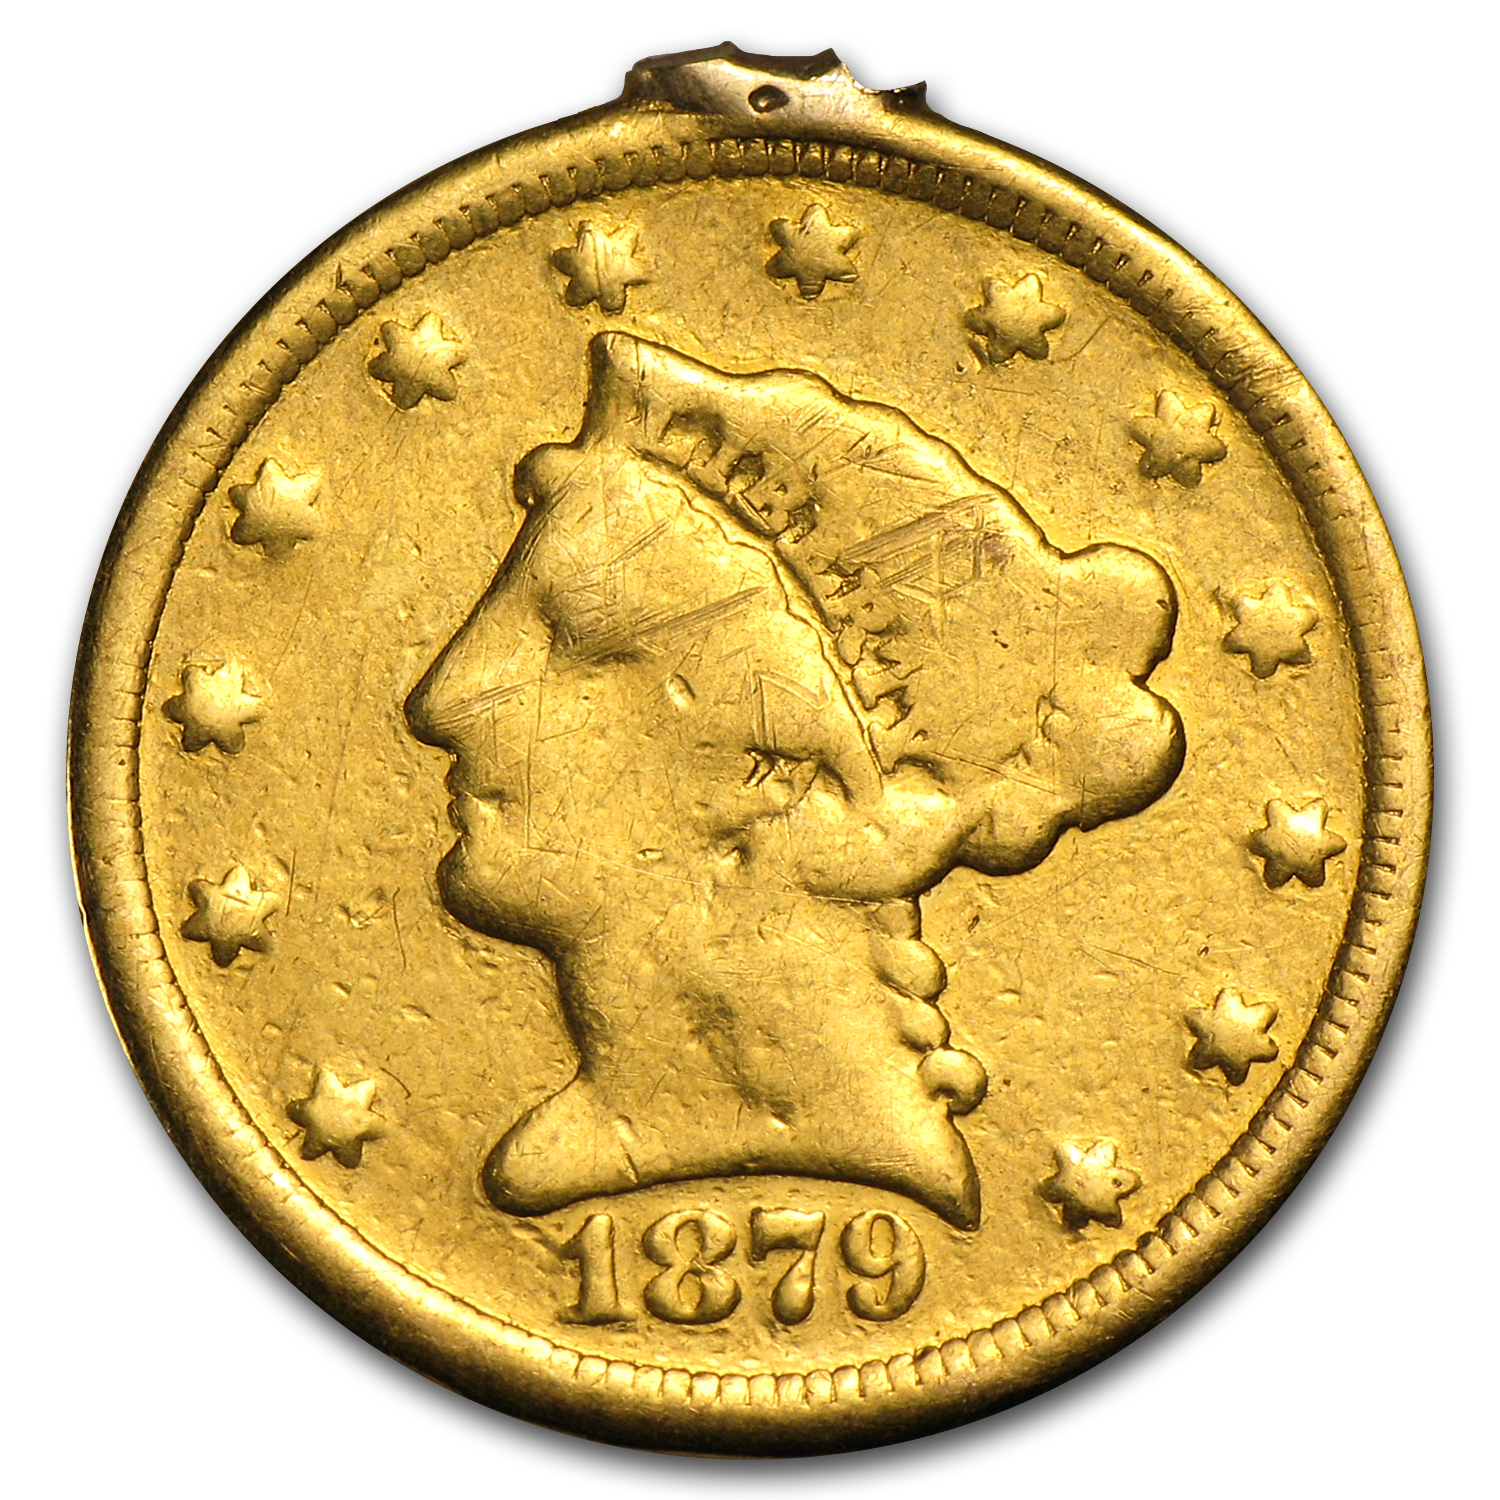 $2.50 Liberty Gold Quarter Eagle - 1879 - Love Token - S W H